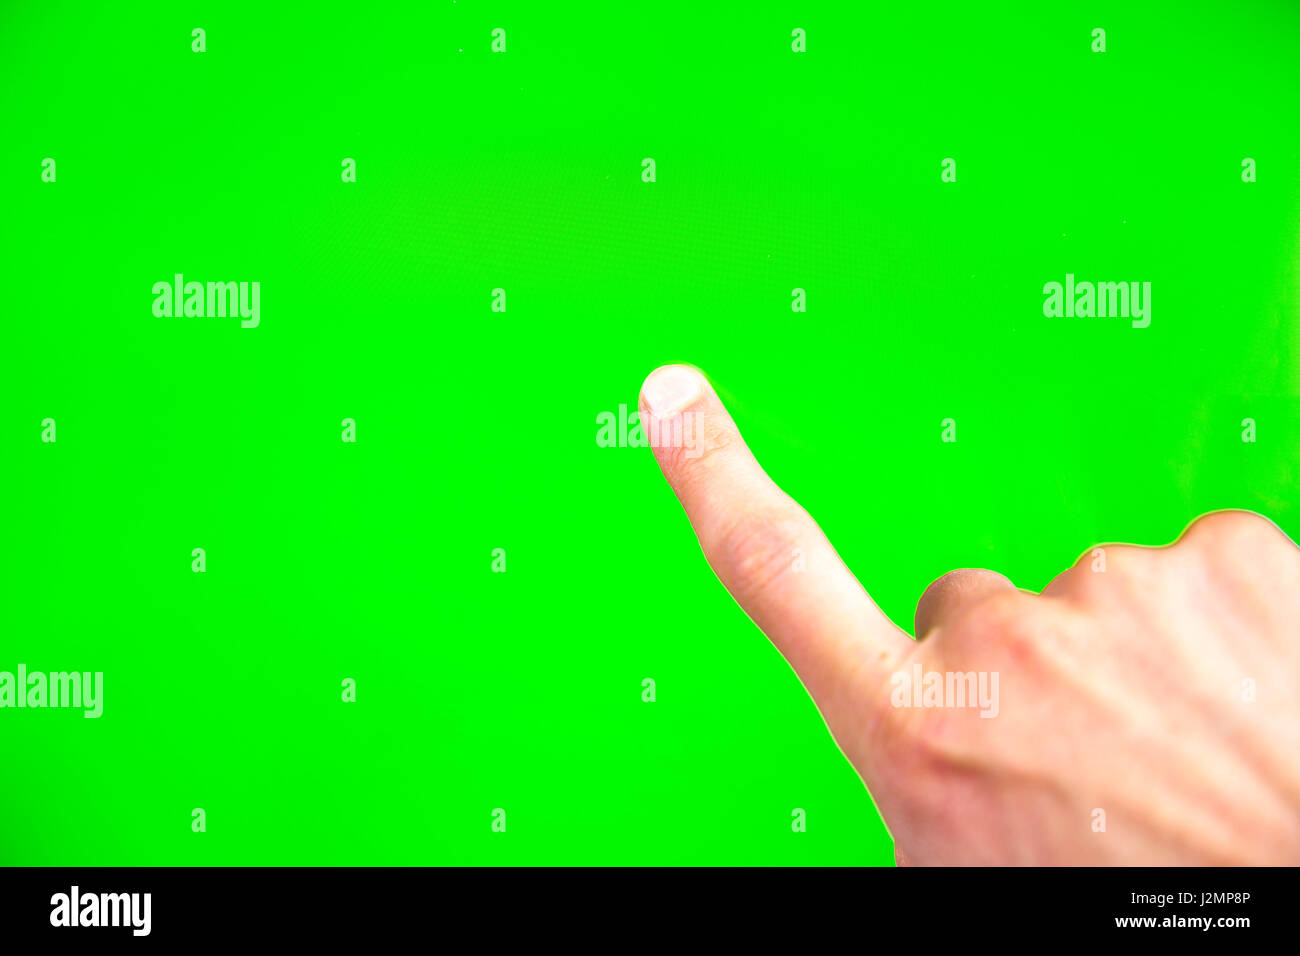 Young man types and slides on a computer screen. Digital screen with chroma key screen - green screen. Male hand. - Stock Image